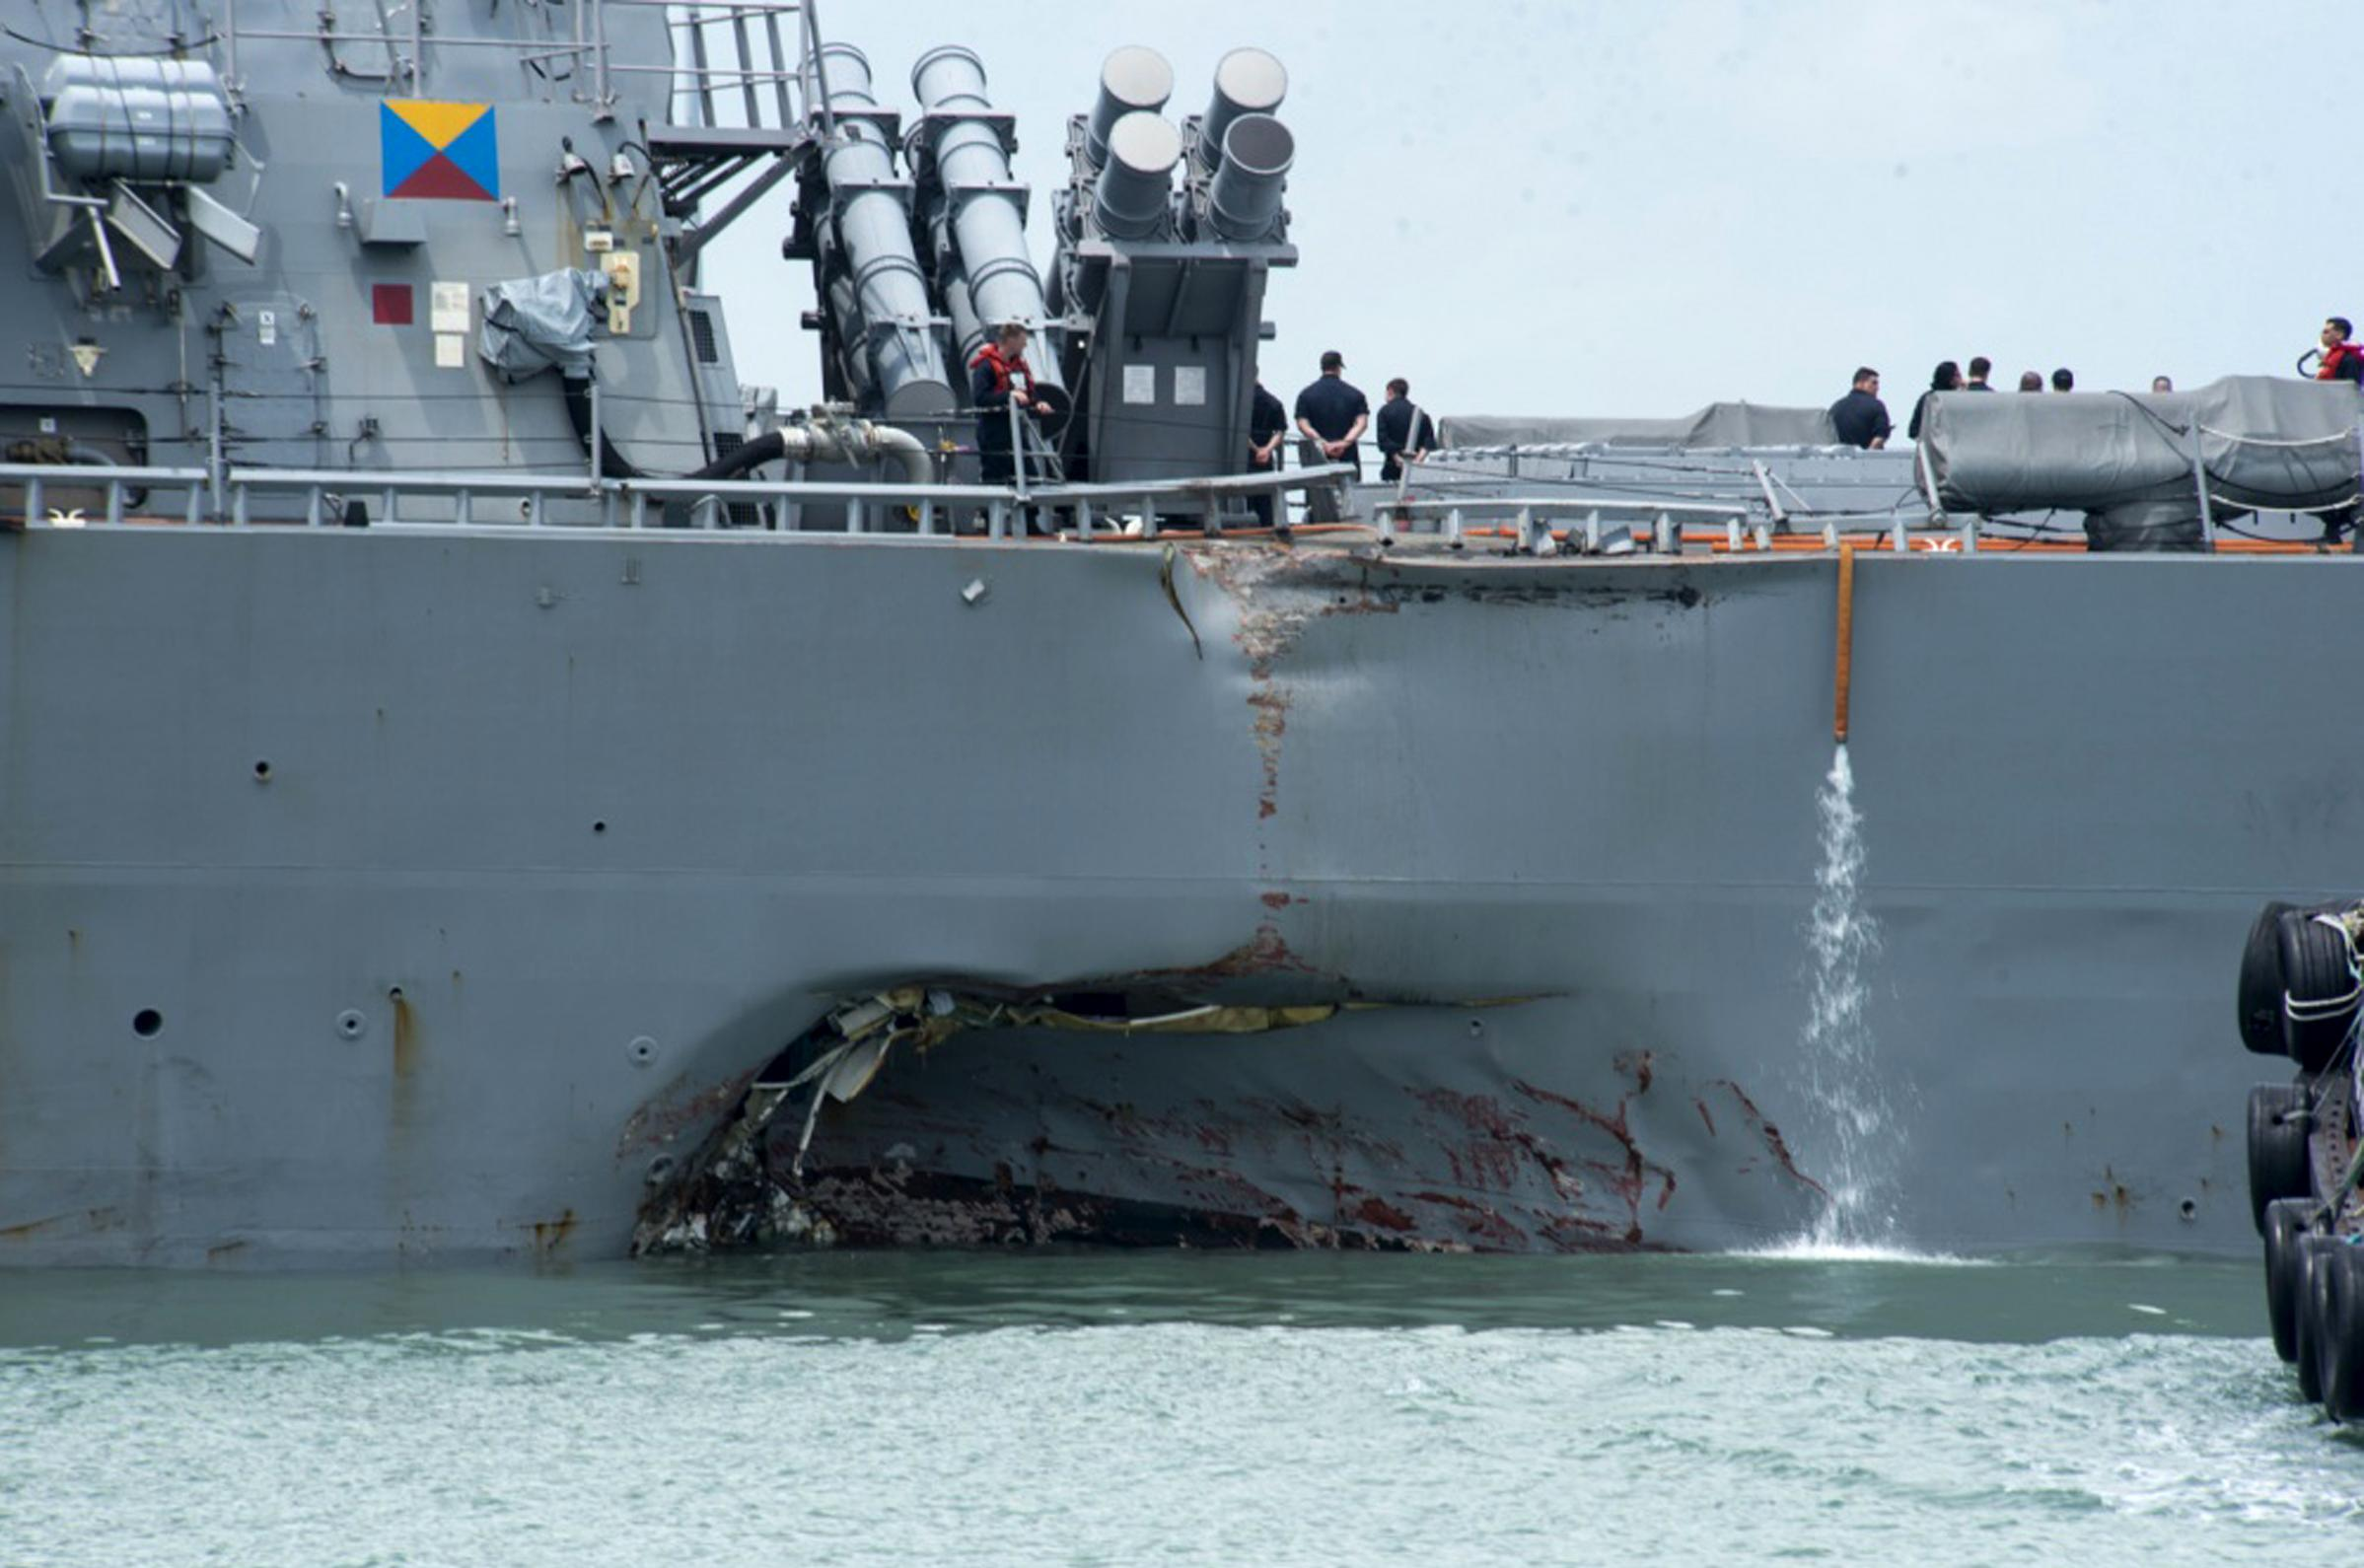 Navy chief orders probe into Pacific fleet after collisions | The ...